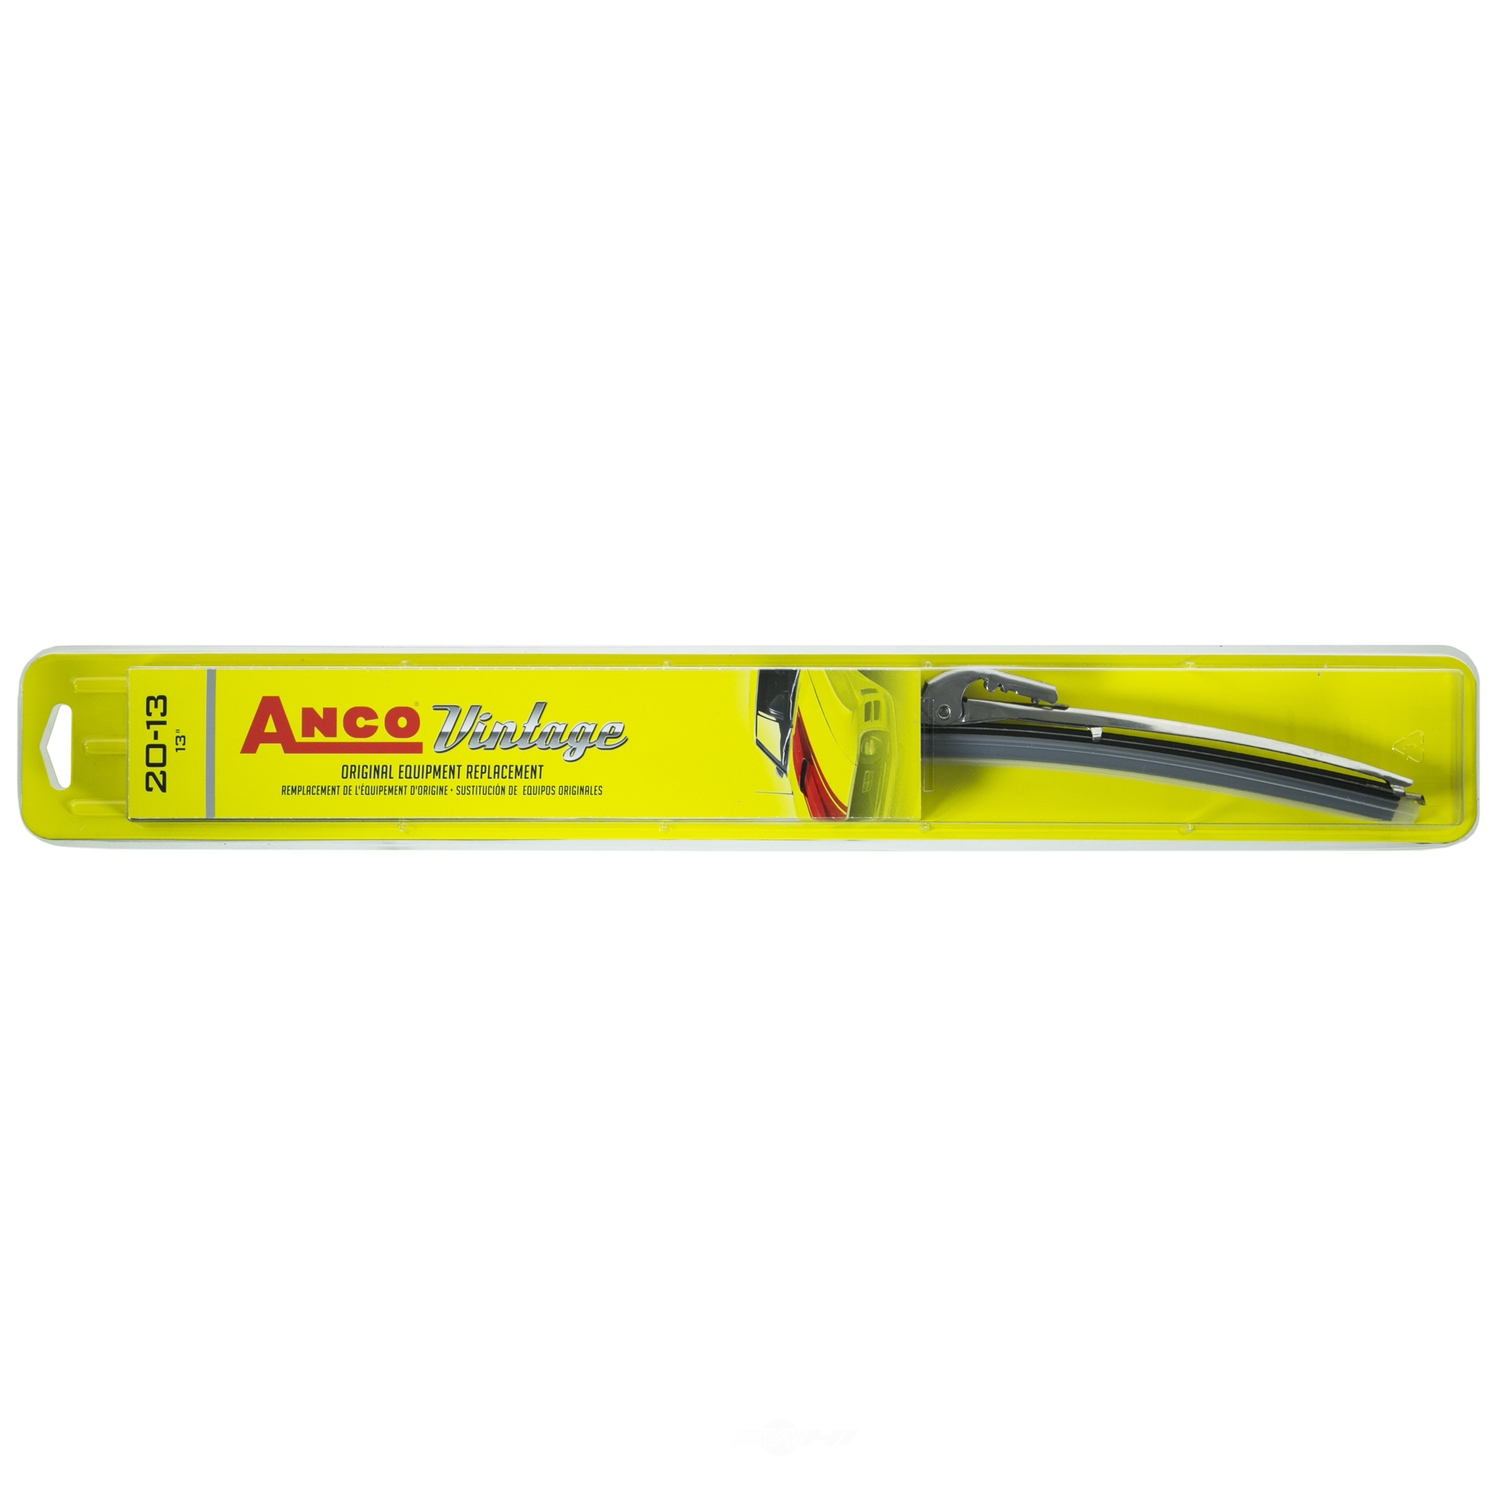 ANCO WIPER PRODUCTS - Vintage Wiper Blade - ANC 20-13